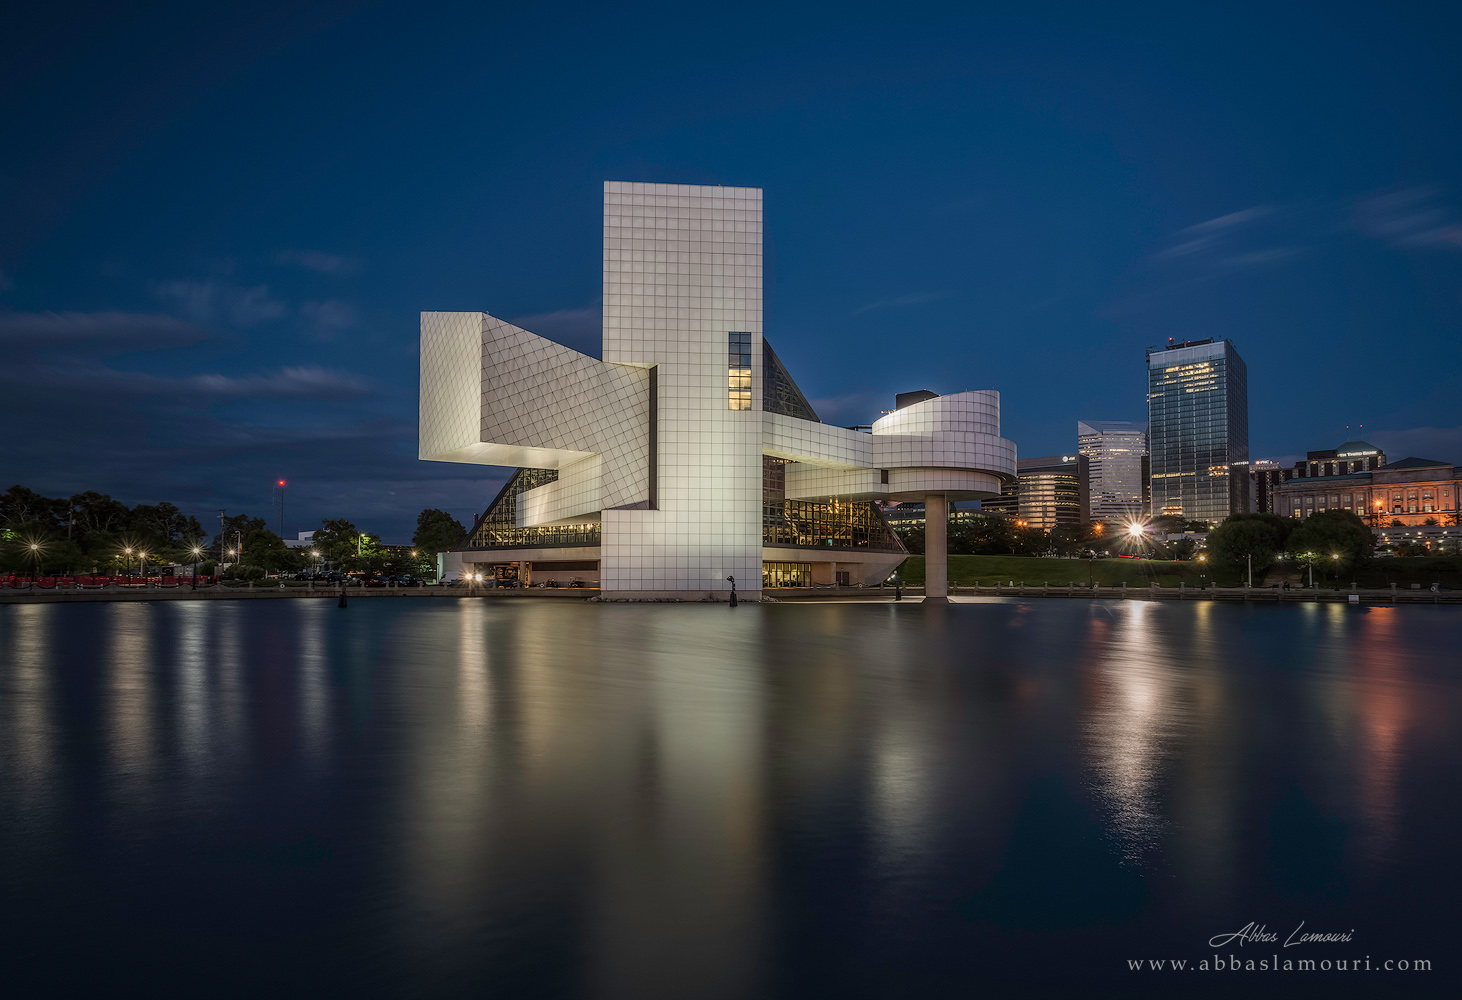 Rock N Roll Hall of Fame and Museum  - Cleveland, Ohio